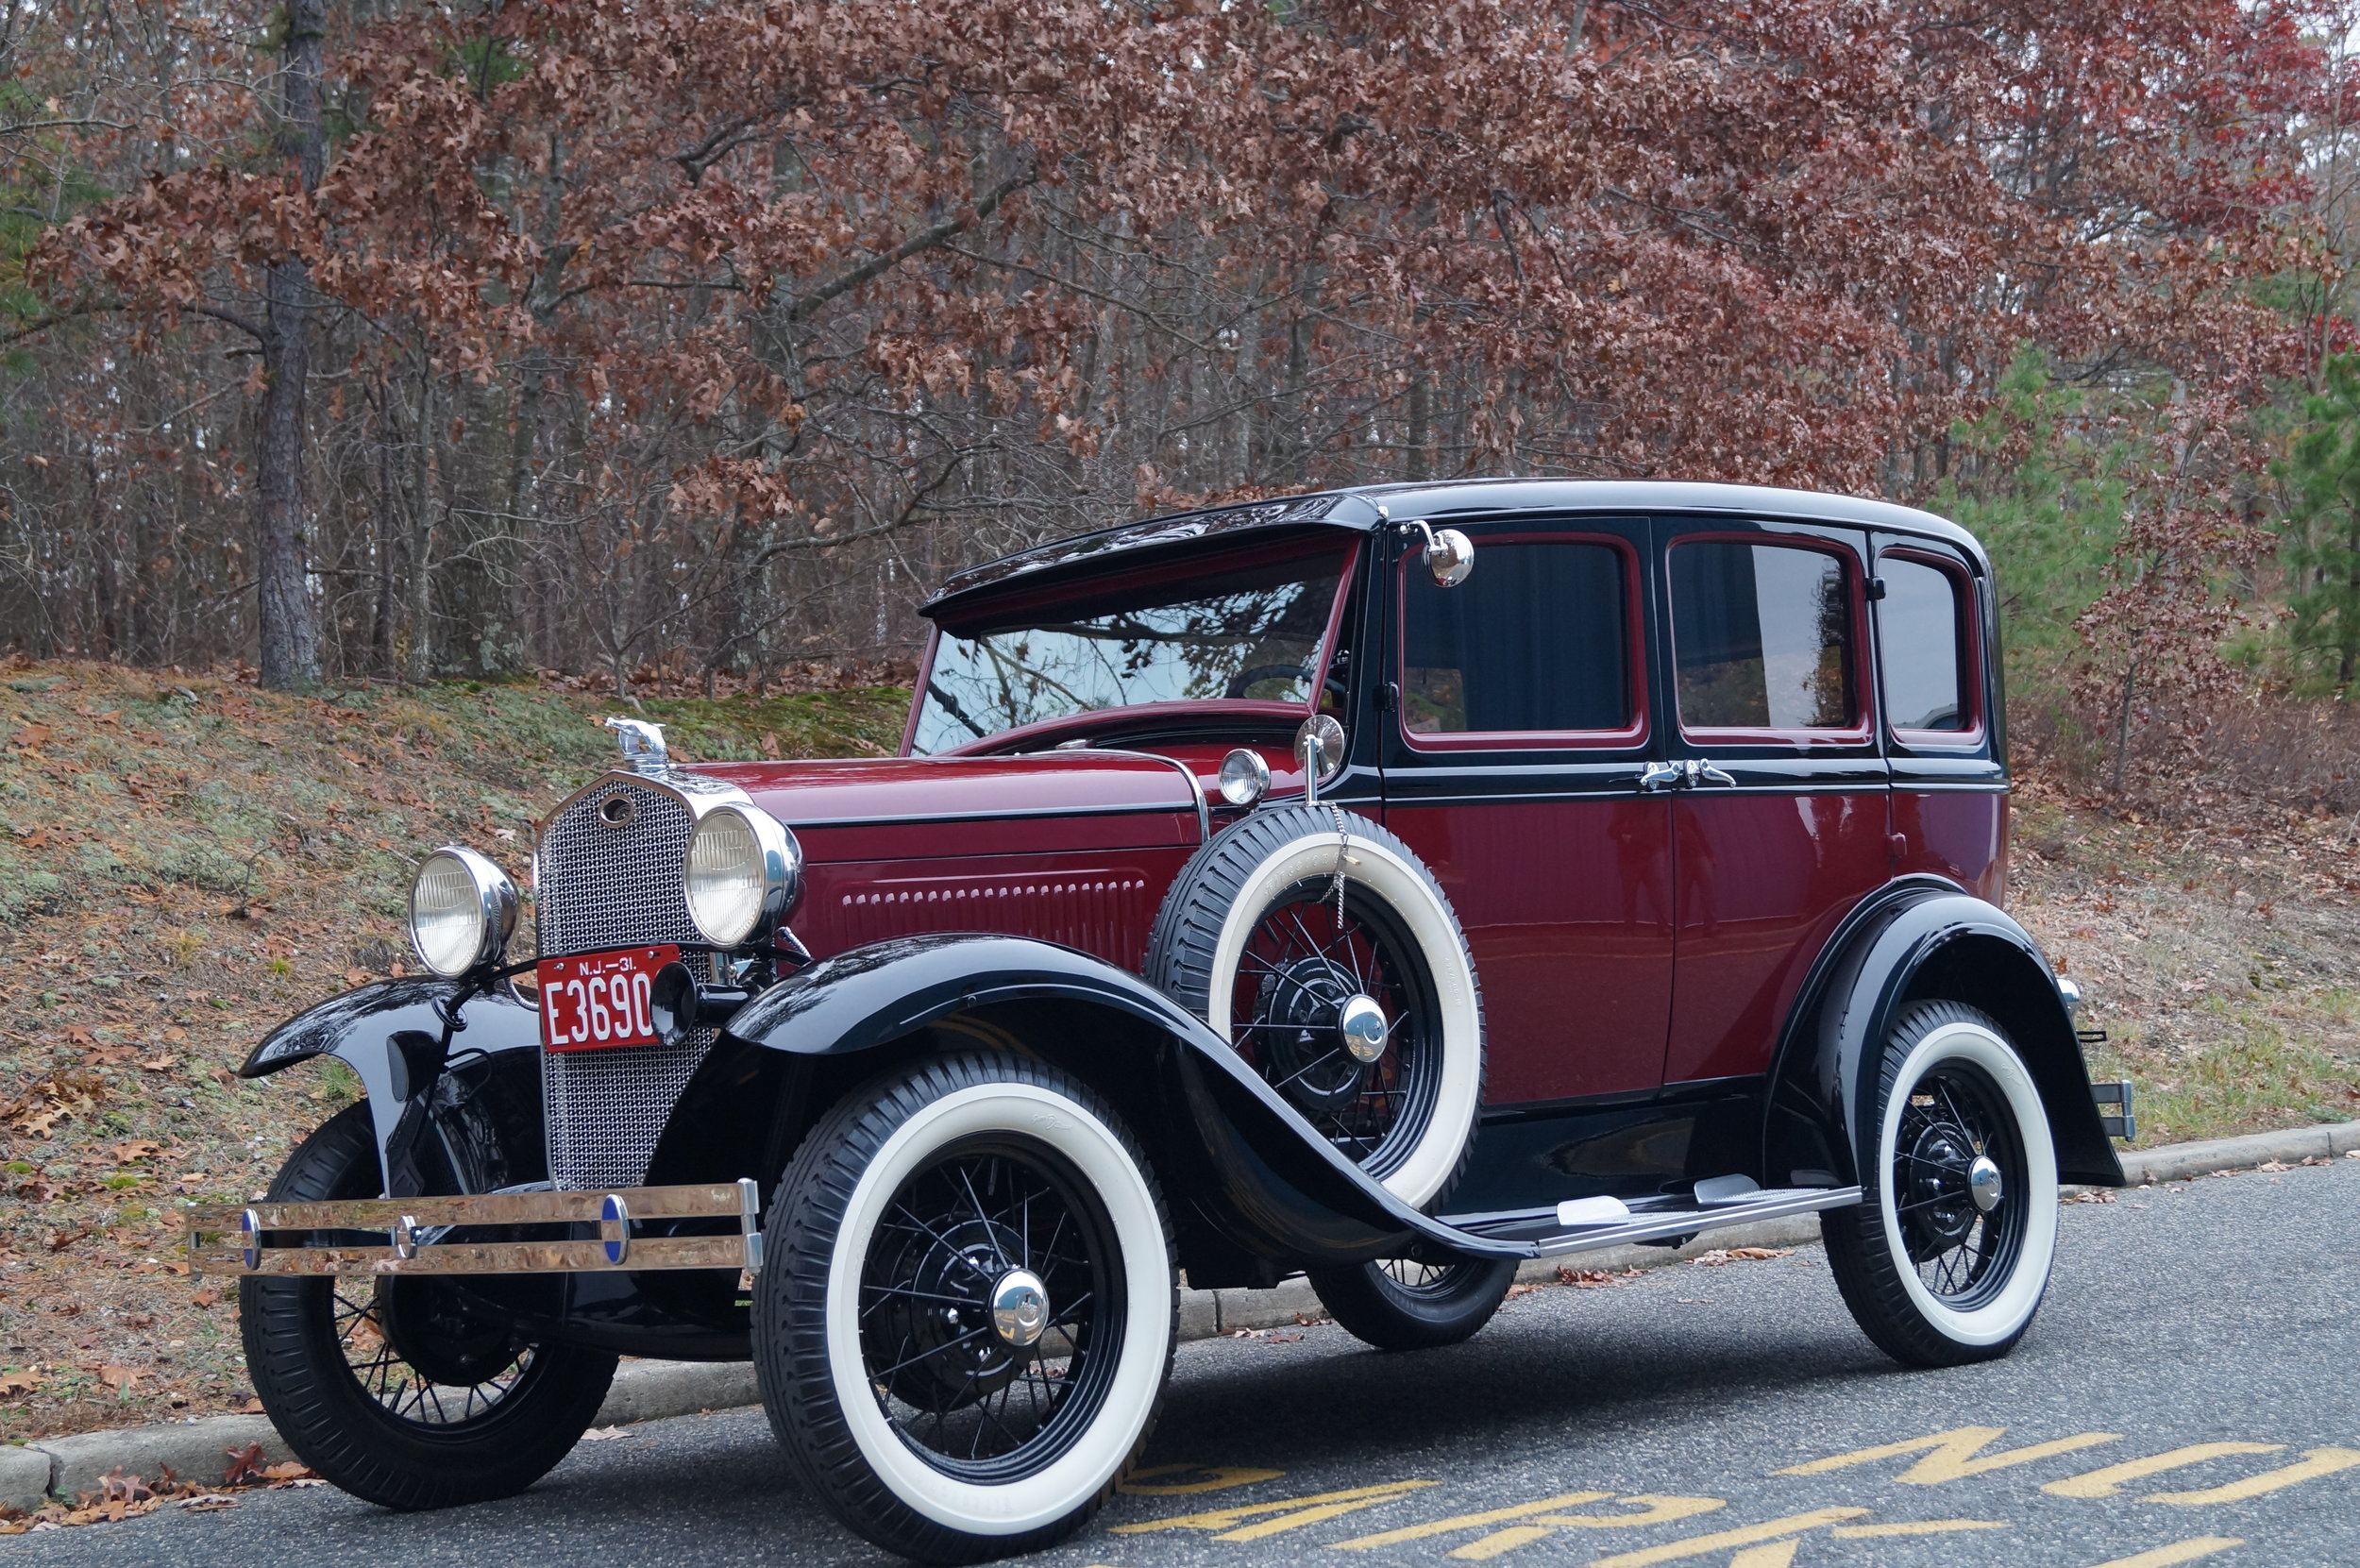 1931 Ford Model A - If you click below to see the additional pictures, you'll see one that features the gas cap which has been engraved with